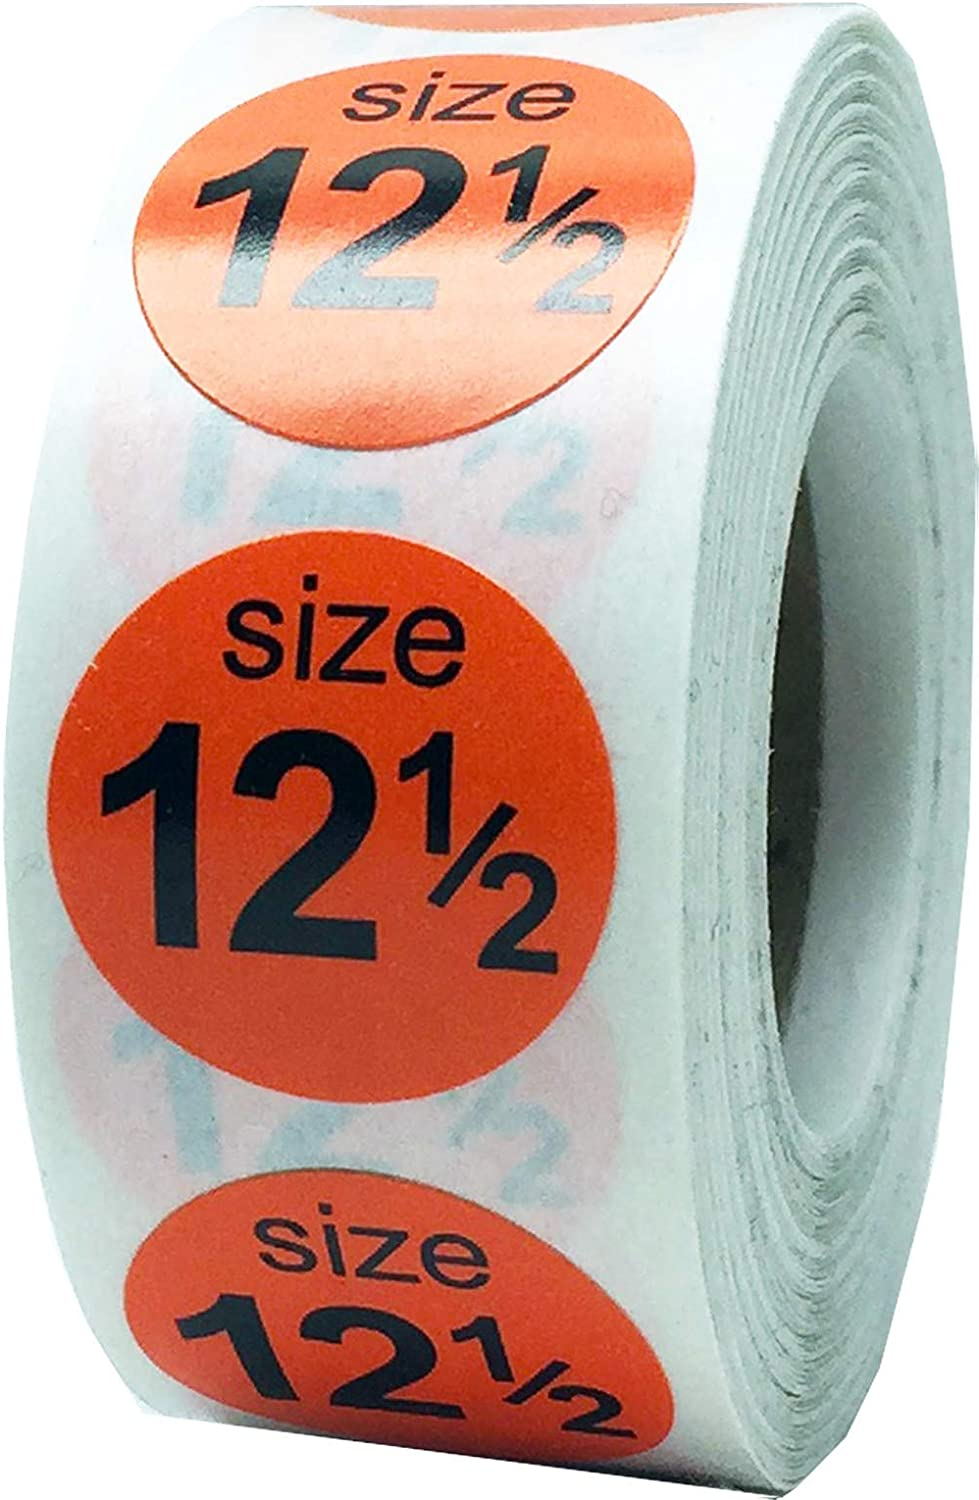 Shoe Size 11 Blue Stickers for Retail Clothing 0.75 Inch 500 Total Adhesive Labels